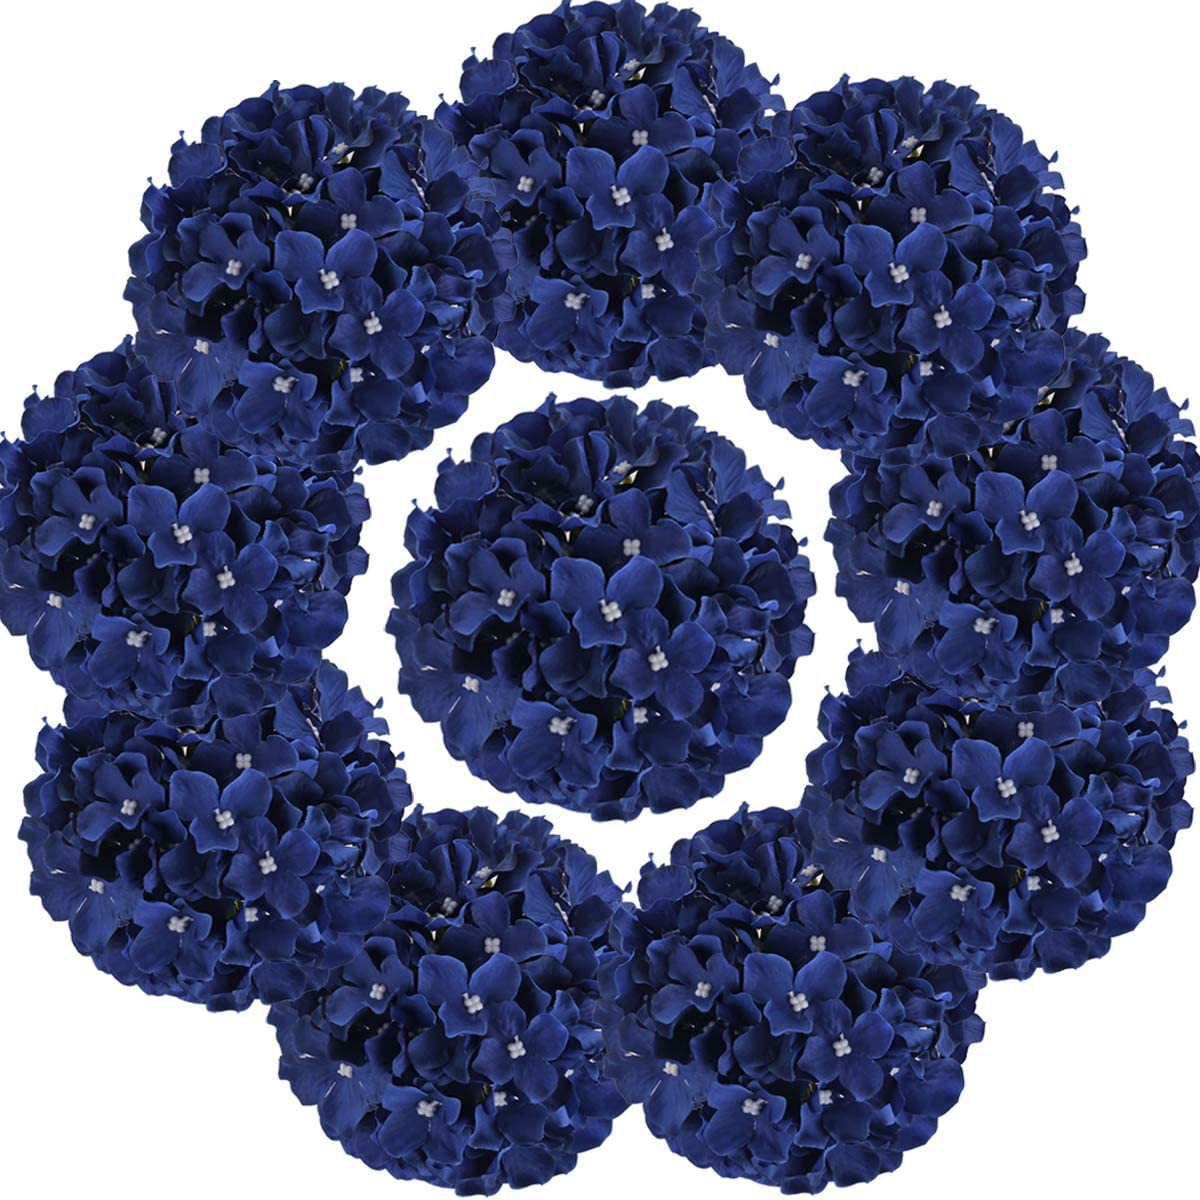 Flojery Silk Hydrangea Heads Artificial Flowers Heads with Stems for Home Wedding Decor,Pack of 10 (Royal Blue)